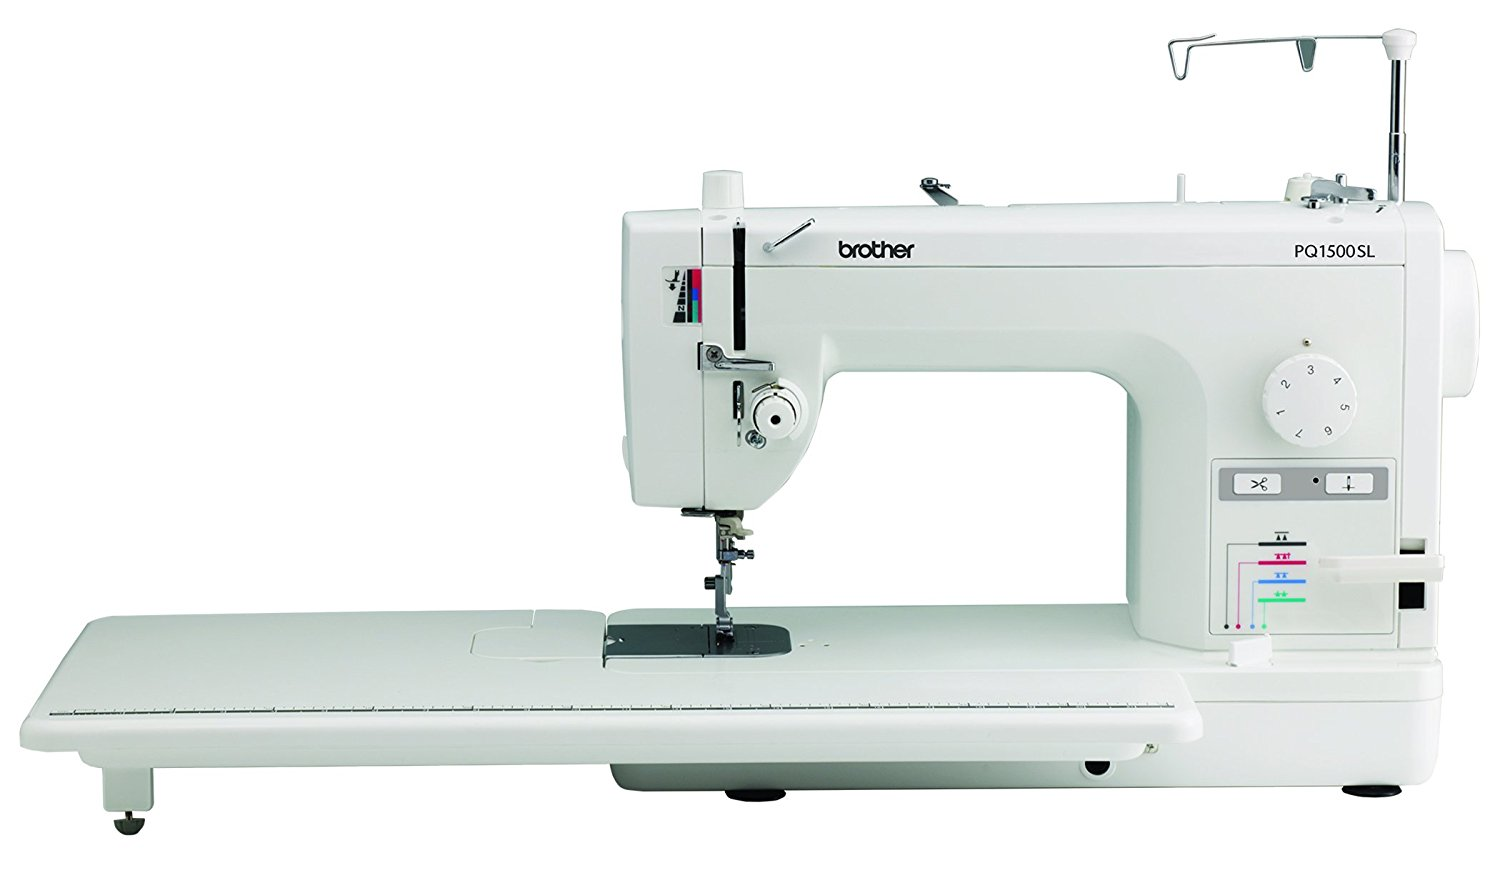 Top Rated Sewing Machines 2020.Top 10 Best Sewing Machines For Quilting In 2019 Complete Review